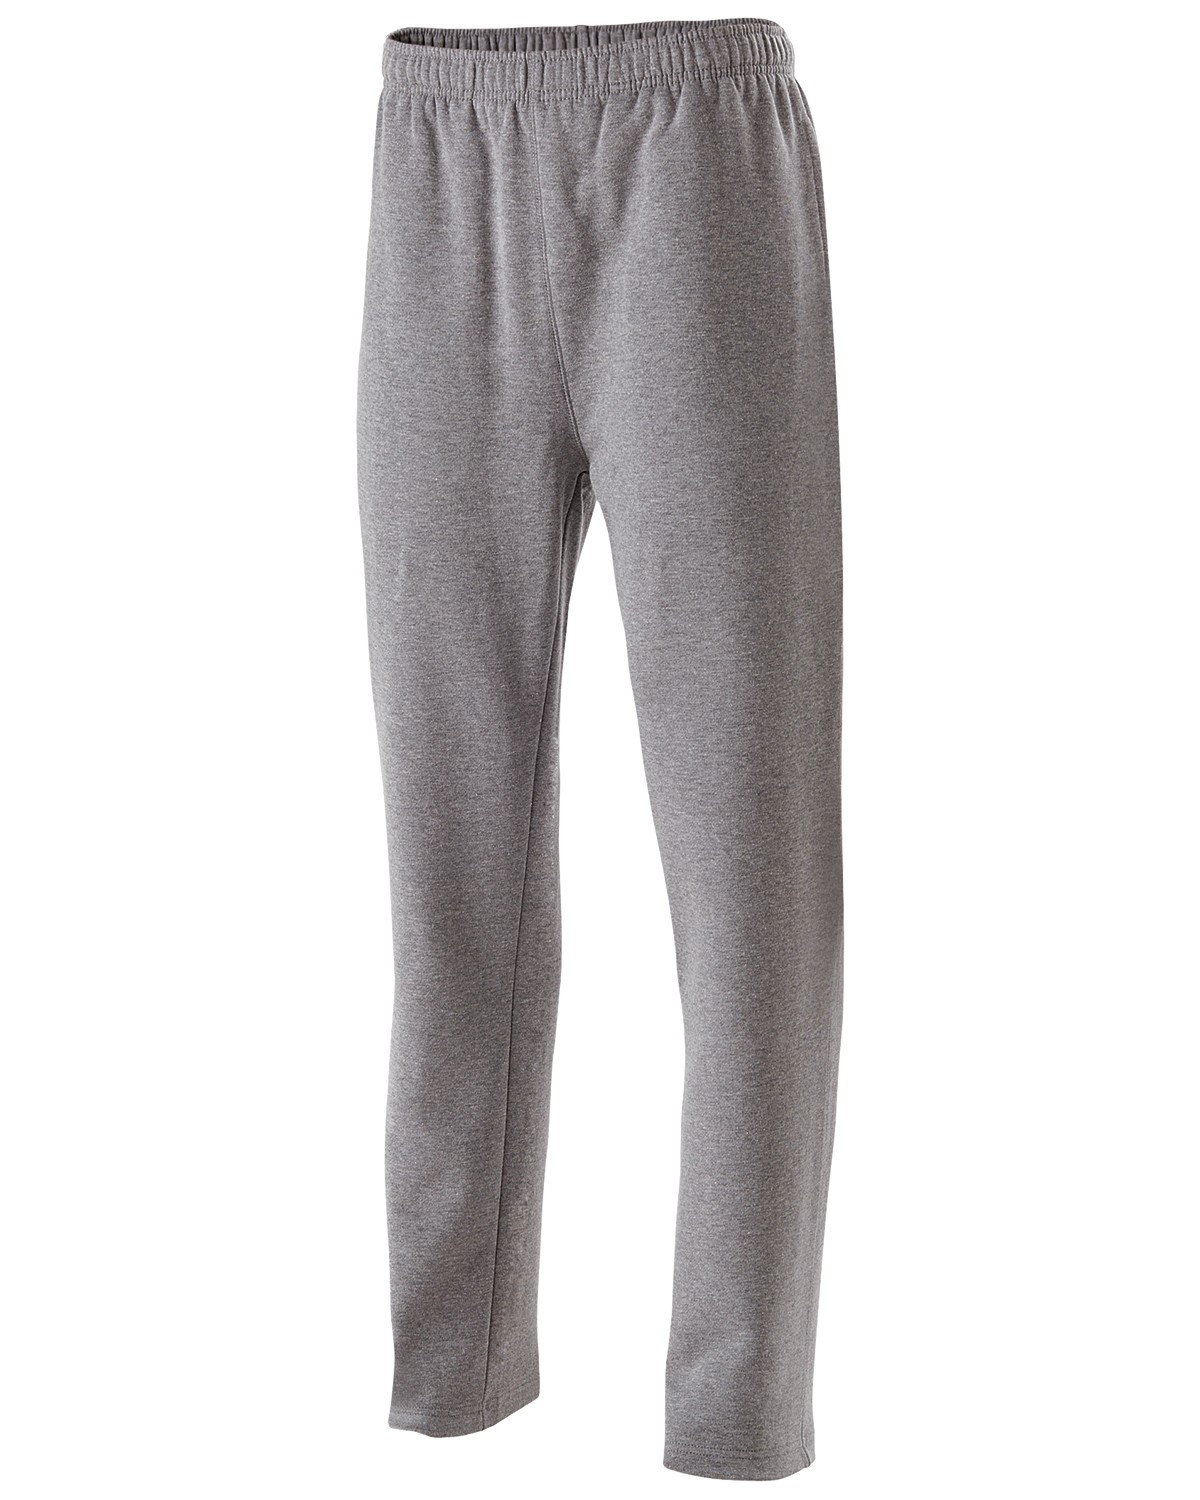 229547 Holloway CHARCOAL HEATHER